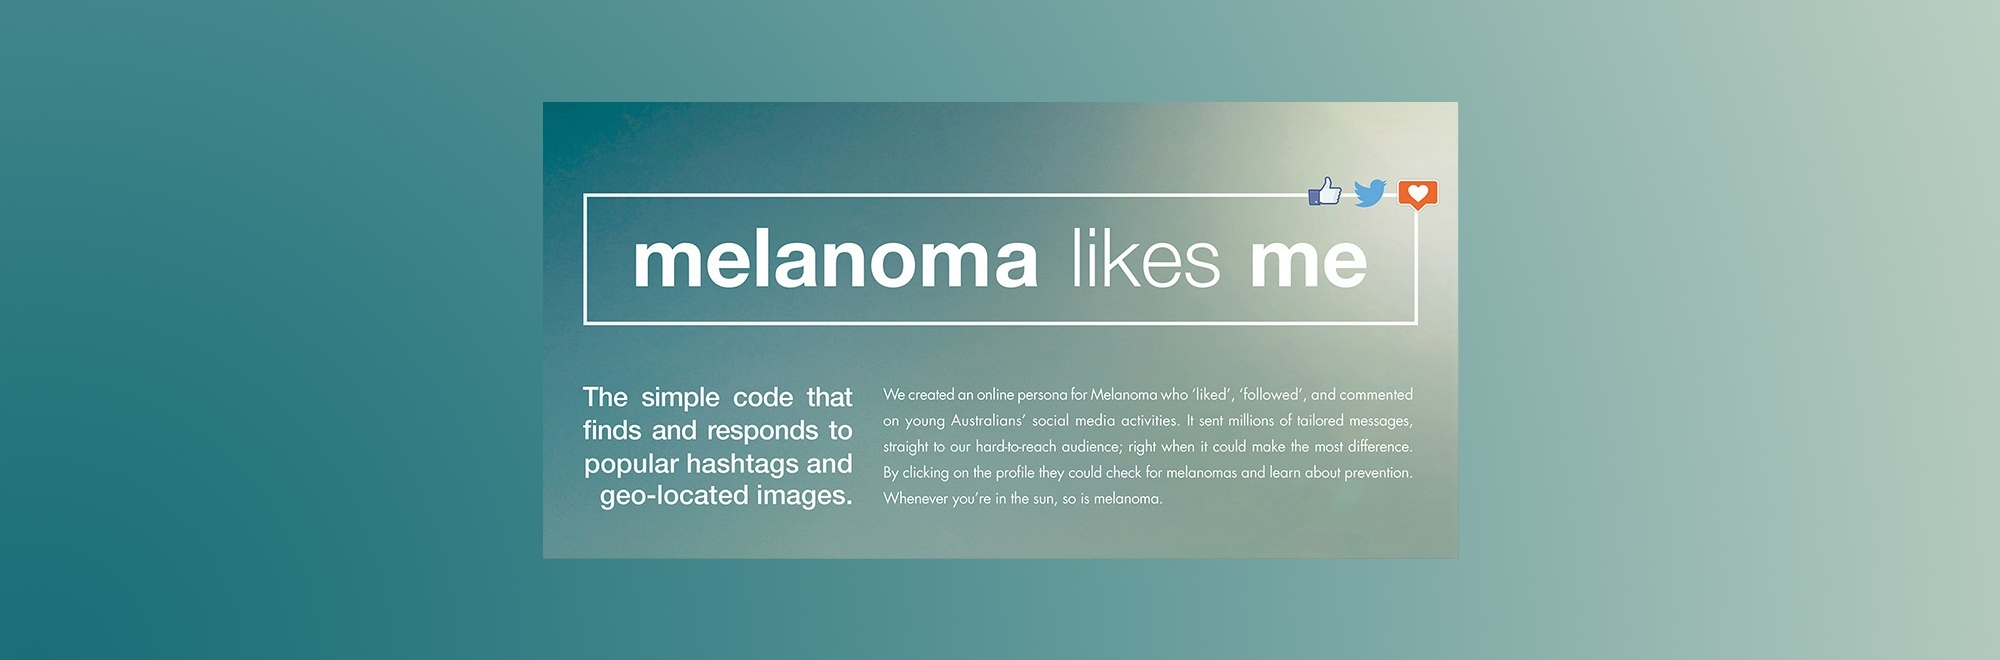 ICYMI: How Melanoma Patients Australia engaged with young sunbathers via social media in this skin cancer prevention campaign